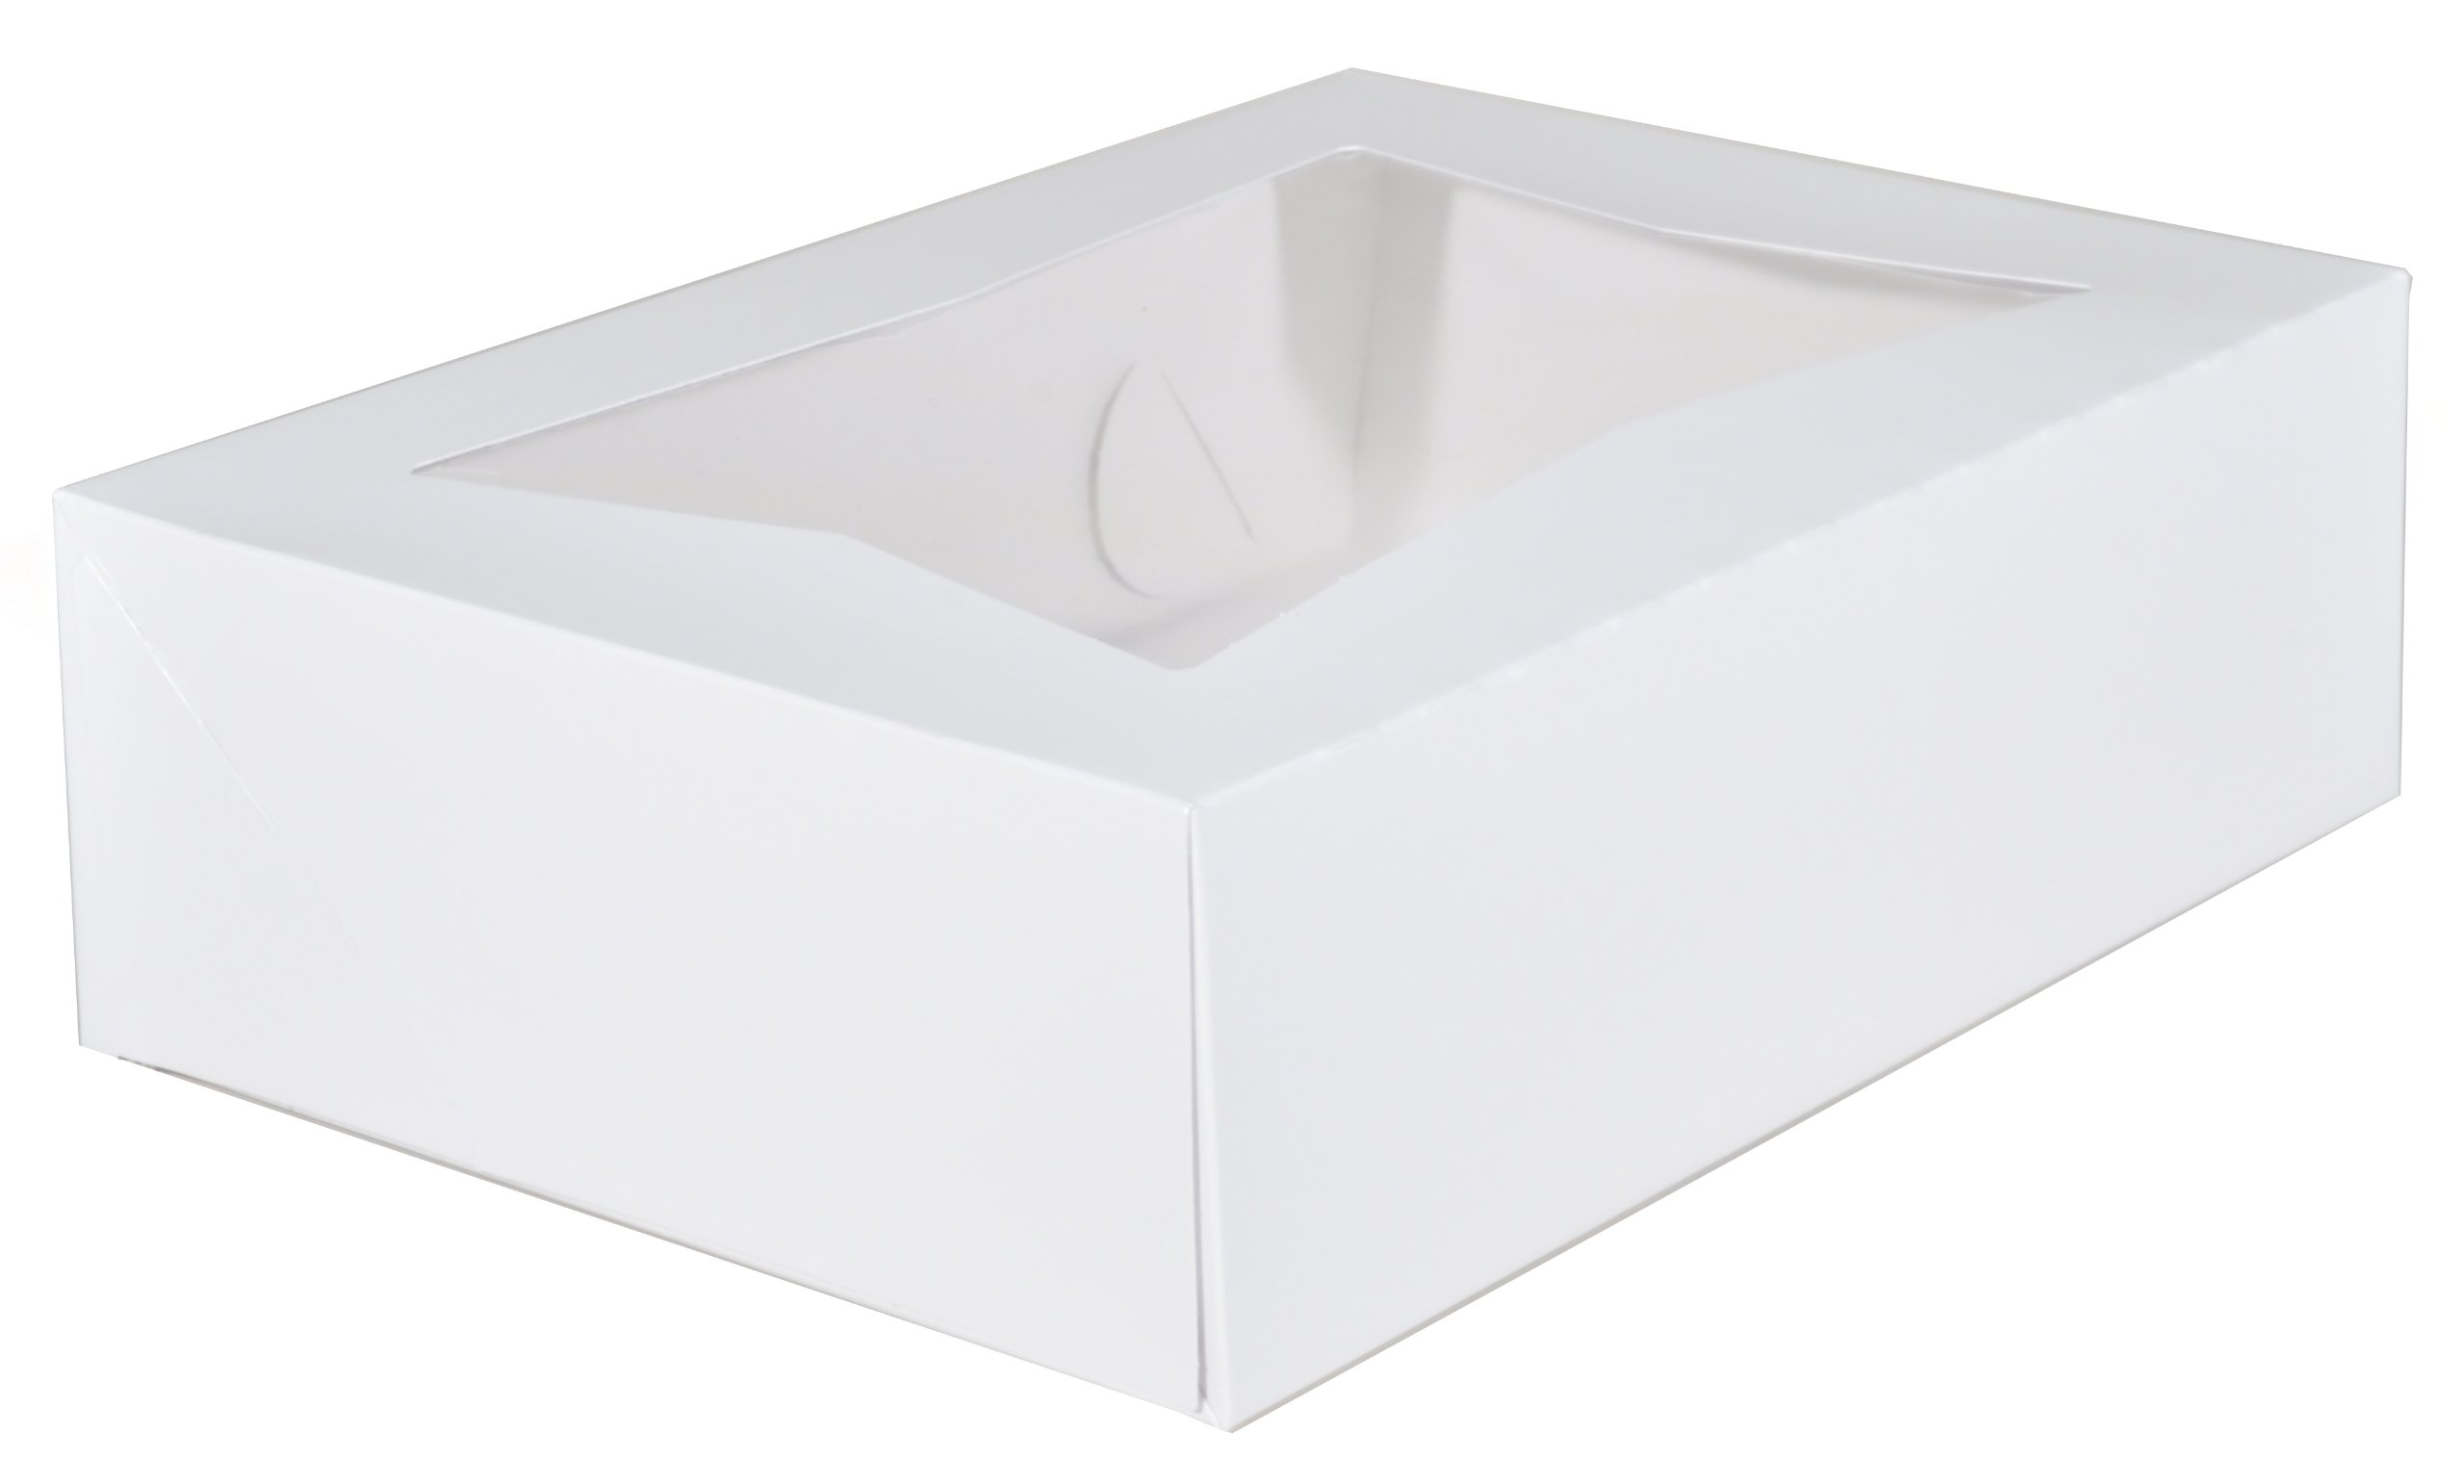 Southern Champion Tray 24263 Paperboard White Window Bakery Box, 14'' Length x 10'' Width x 4'' Height (Case of 100)